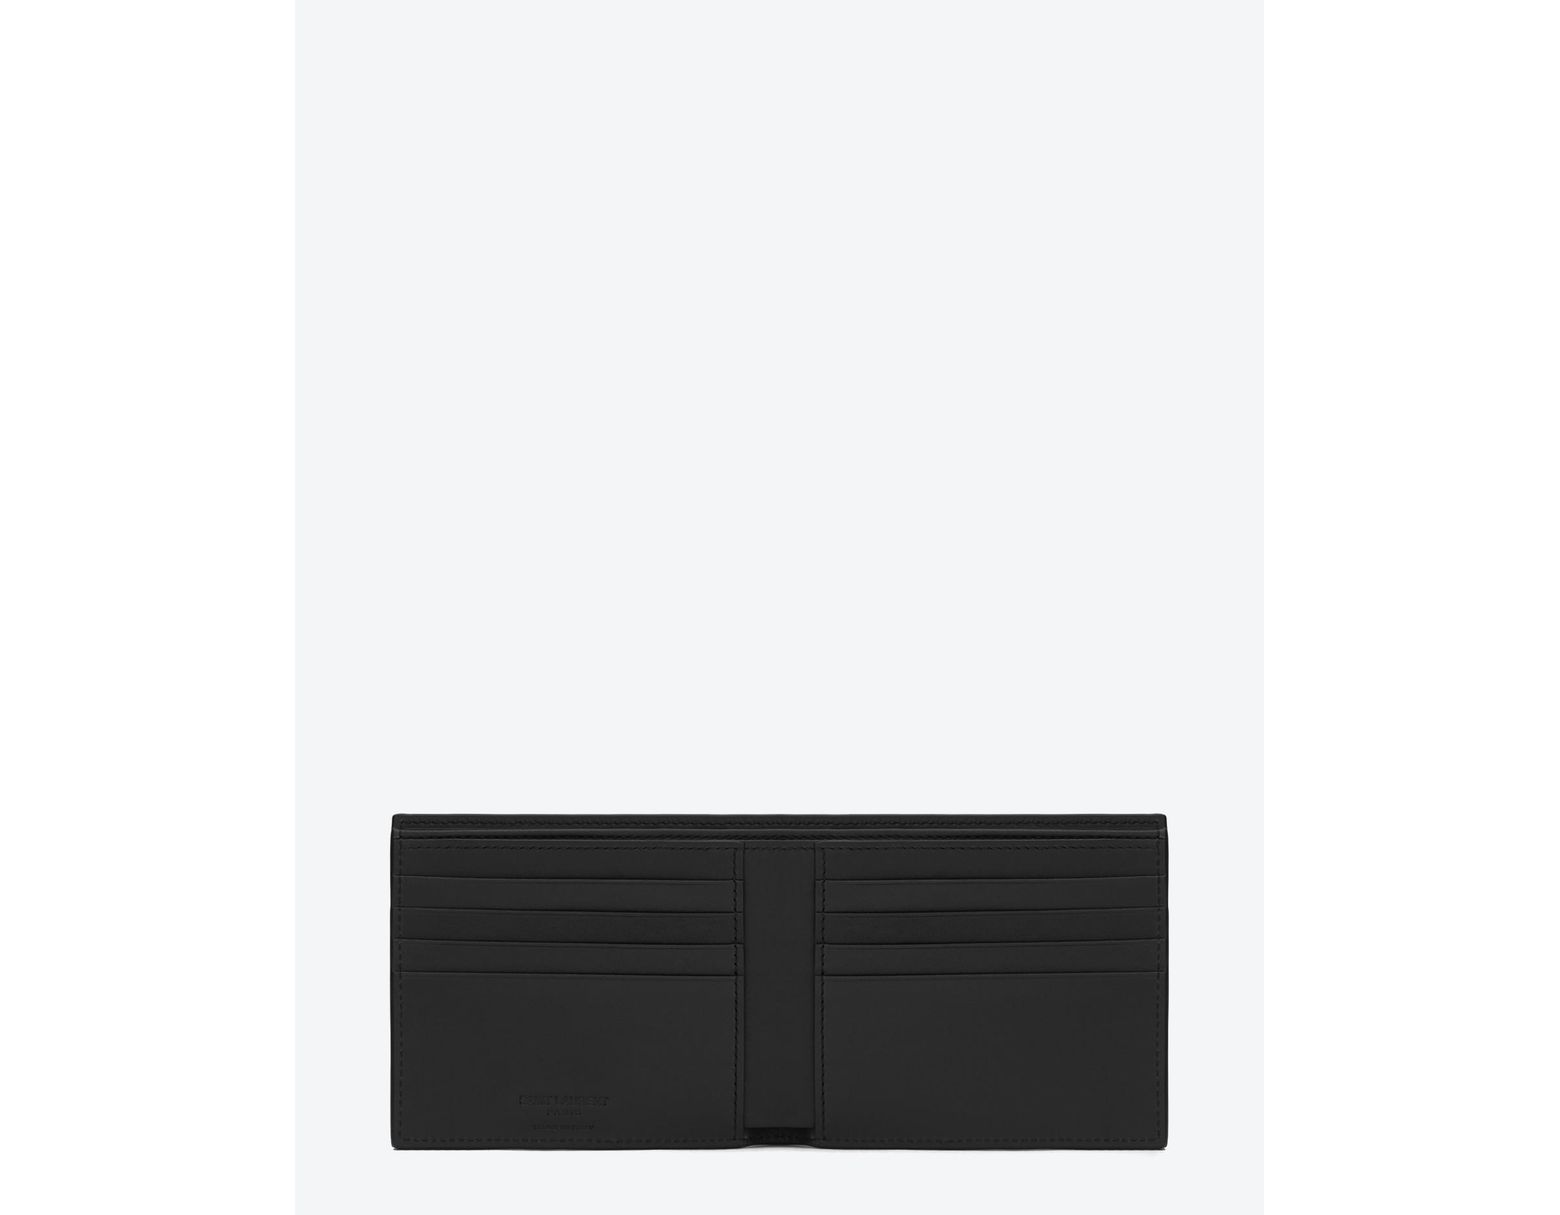 eb809c9795c Saint Laurent East/west Wallet In Smooth Leather in Black for Men - Save  25% - Lyst